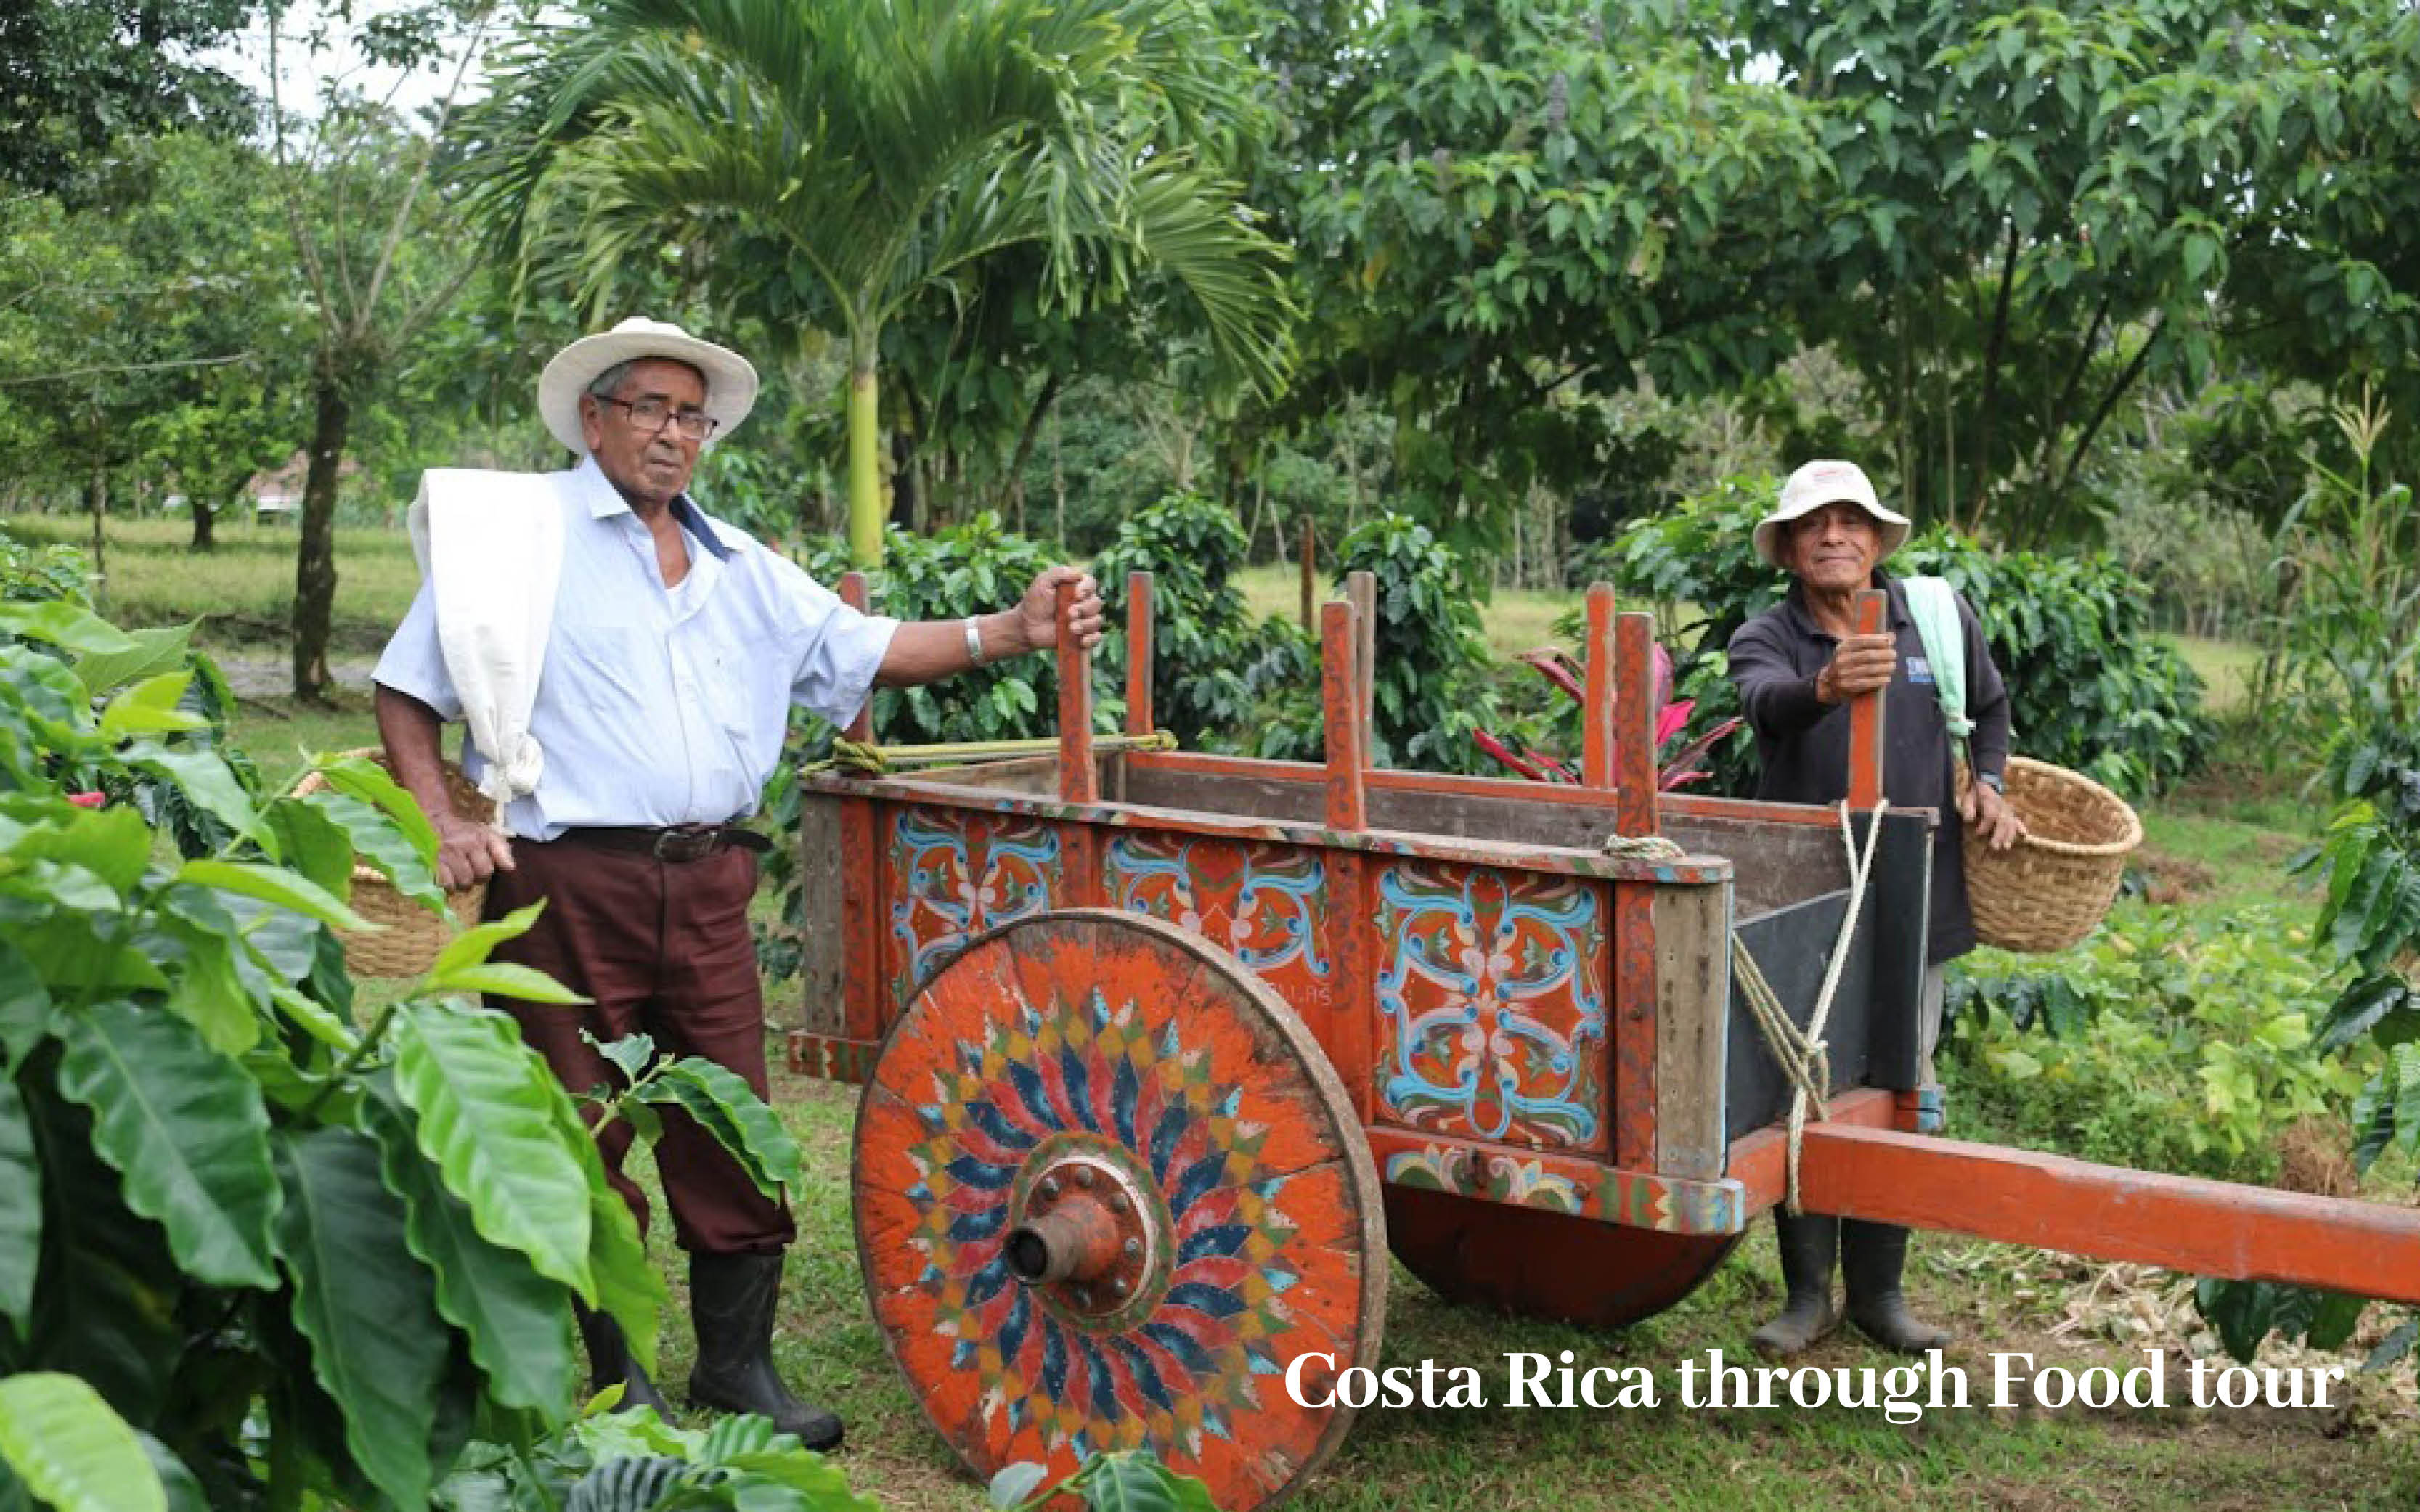 Costa Rica holiday offer food tour